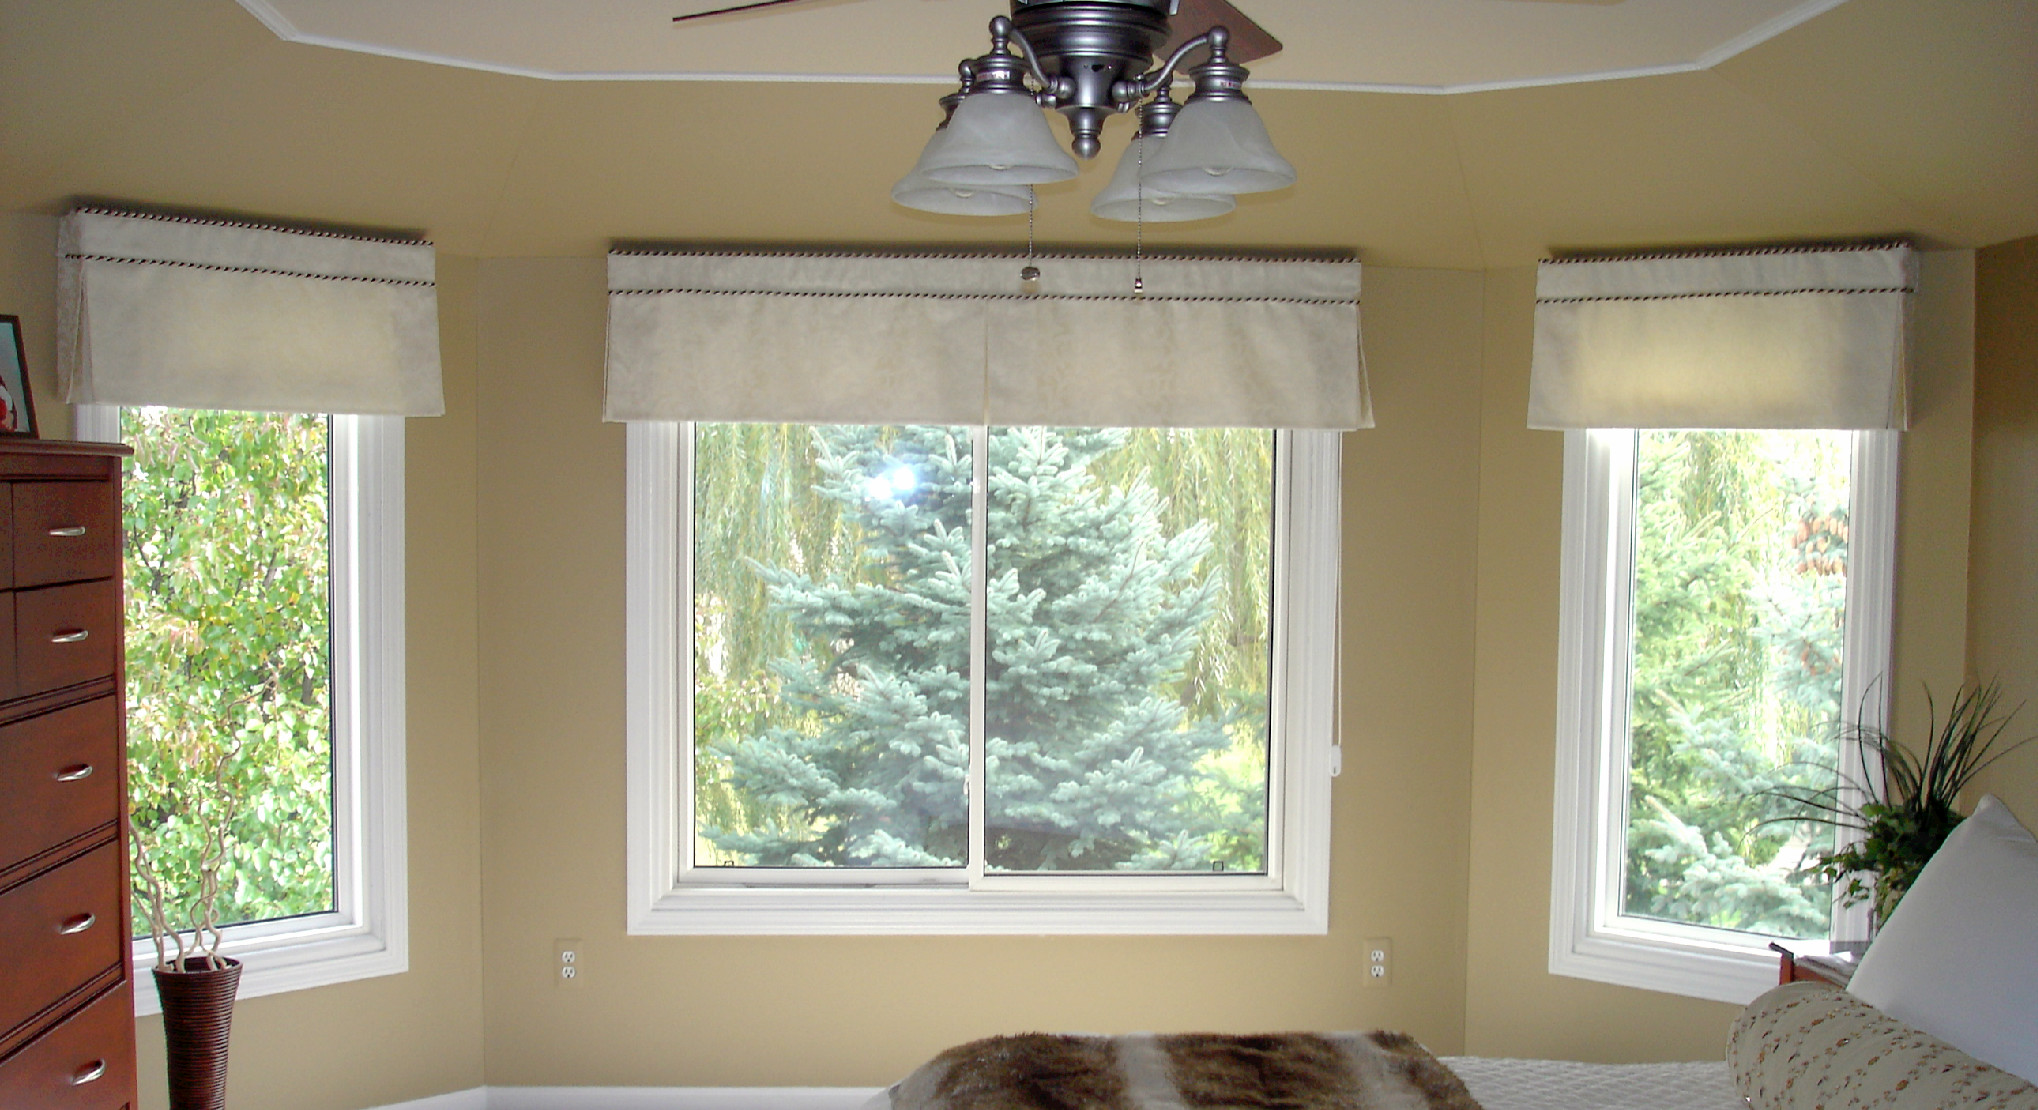 Valances window treatments ideas window treatments Drapery treatments ideas